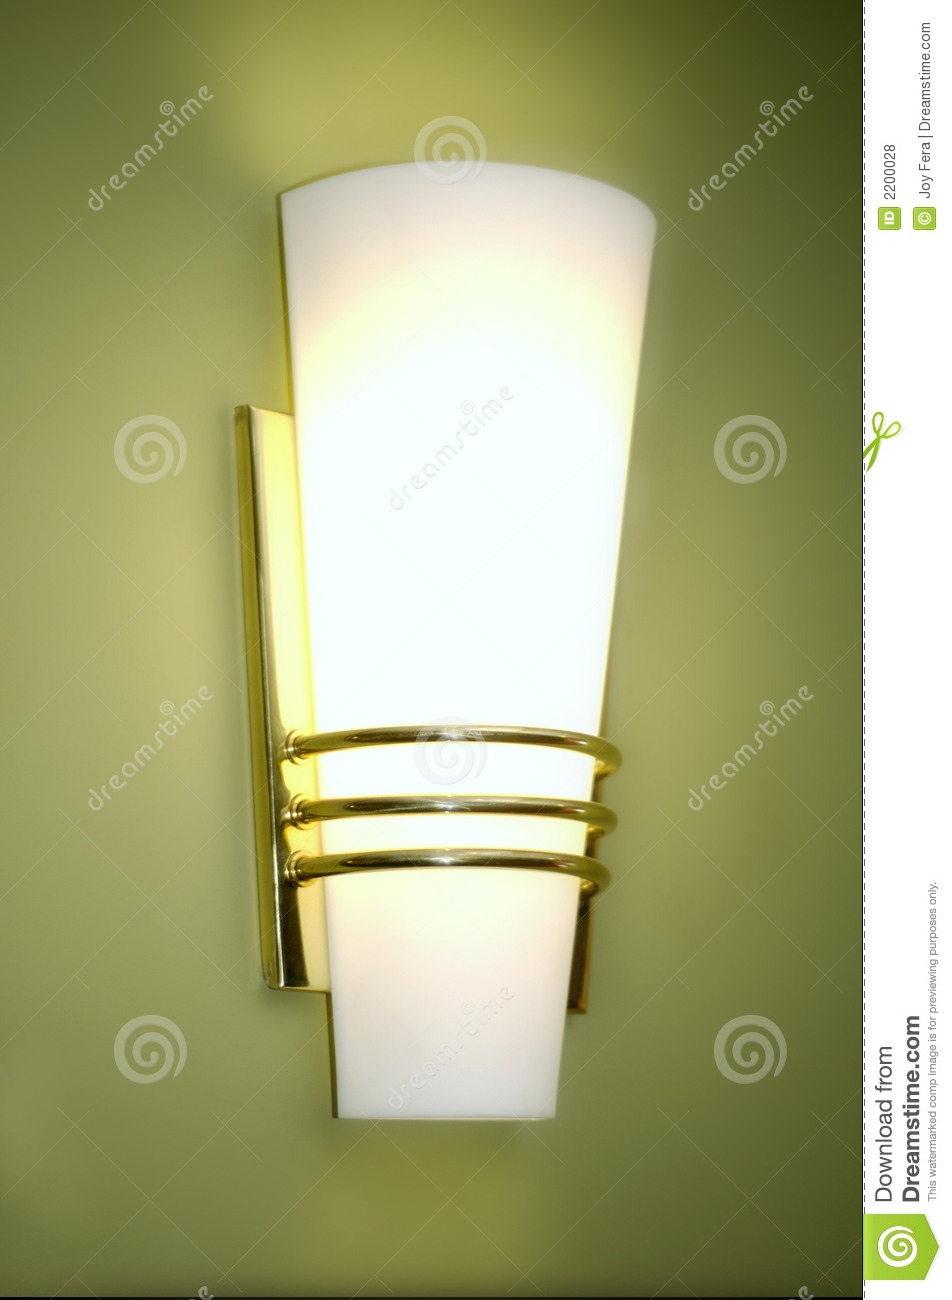 wall sconce royalty free stock photos